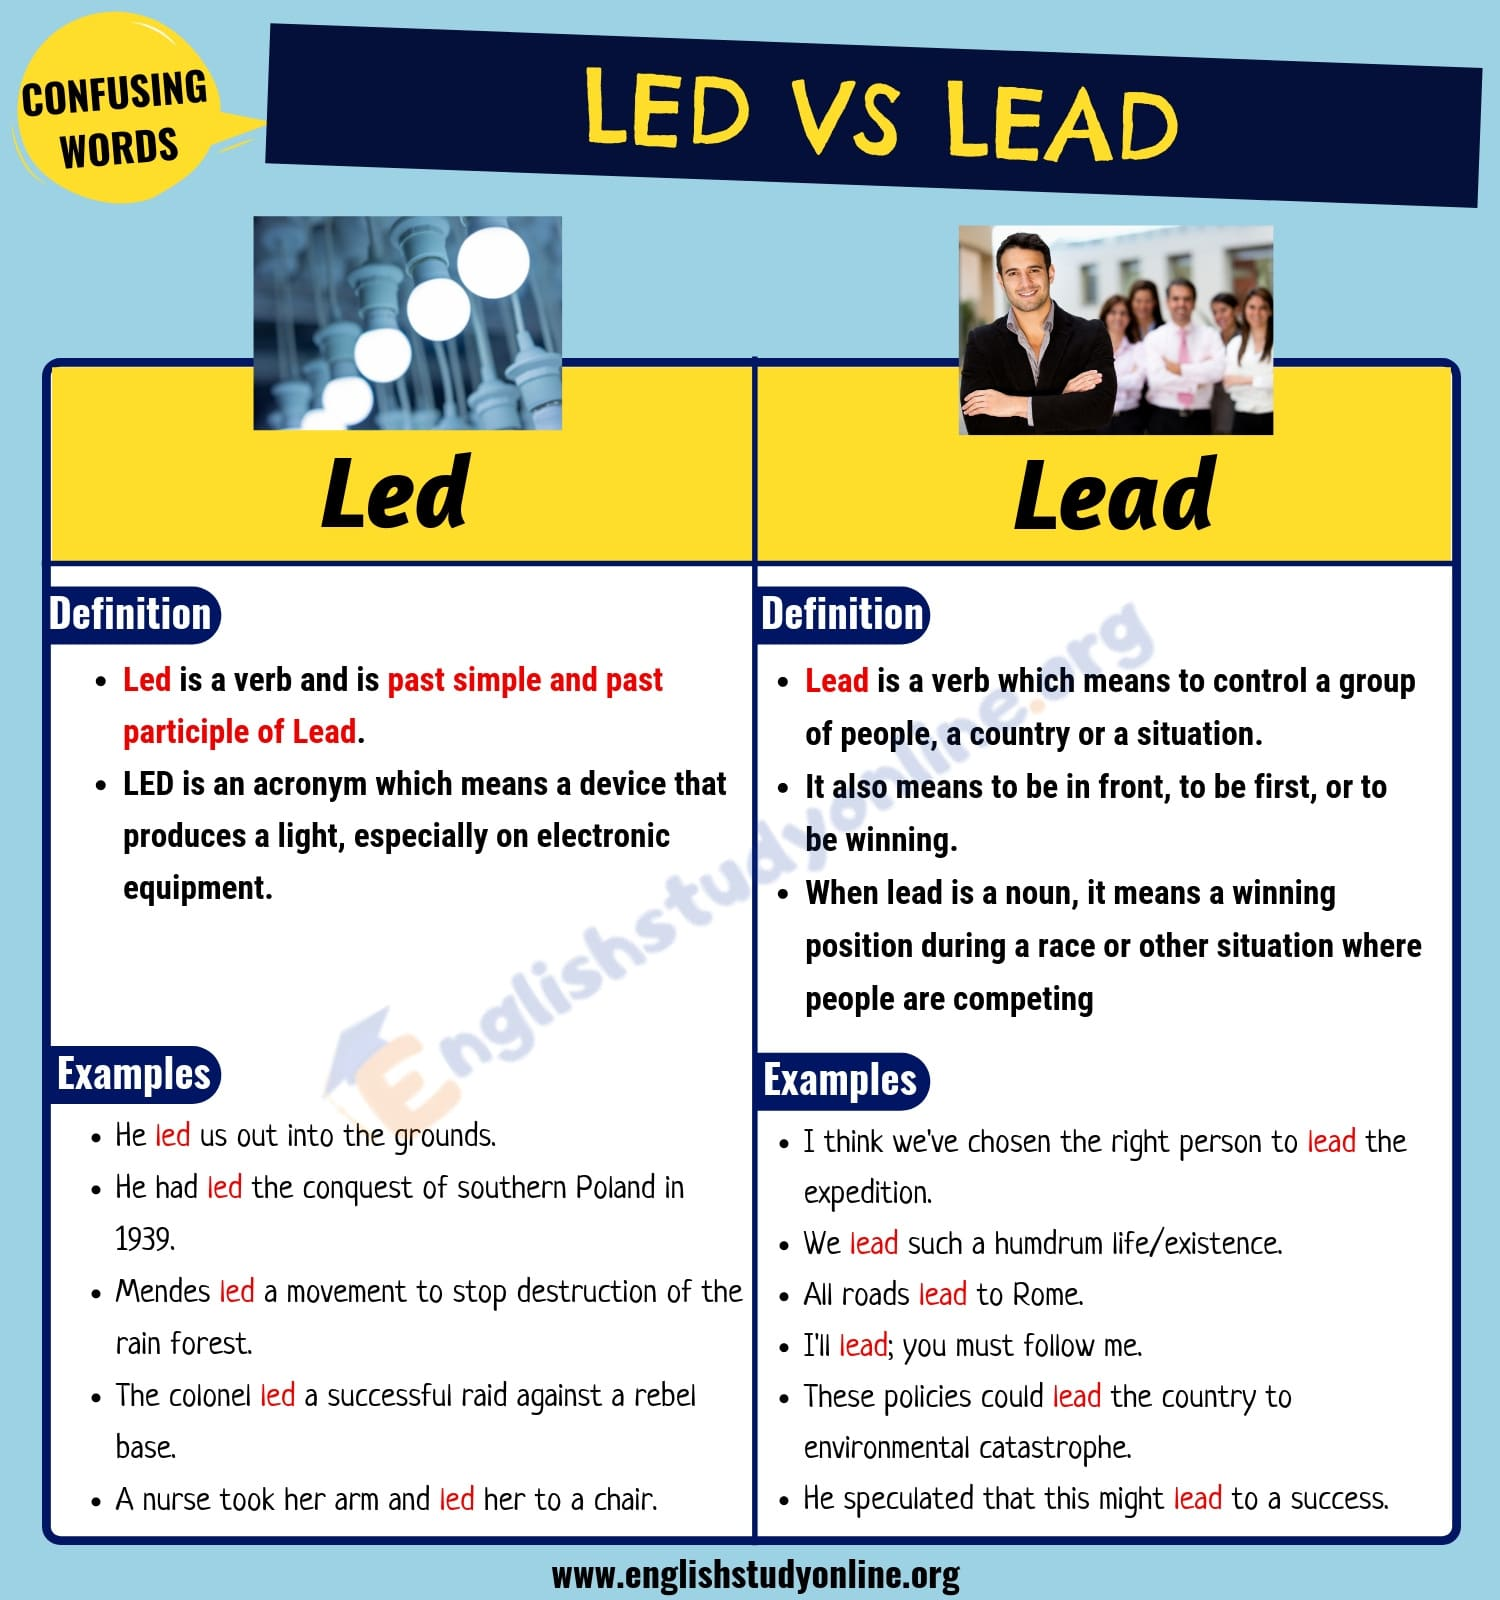 Led vs Lead: What is The Main Difference Between Lead vs Led? 2